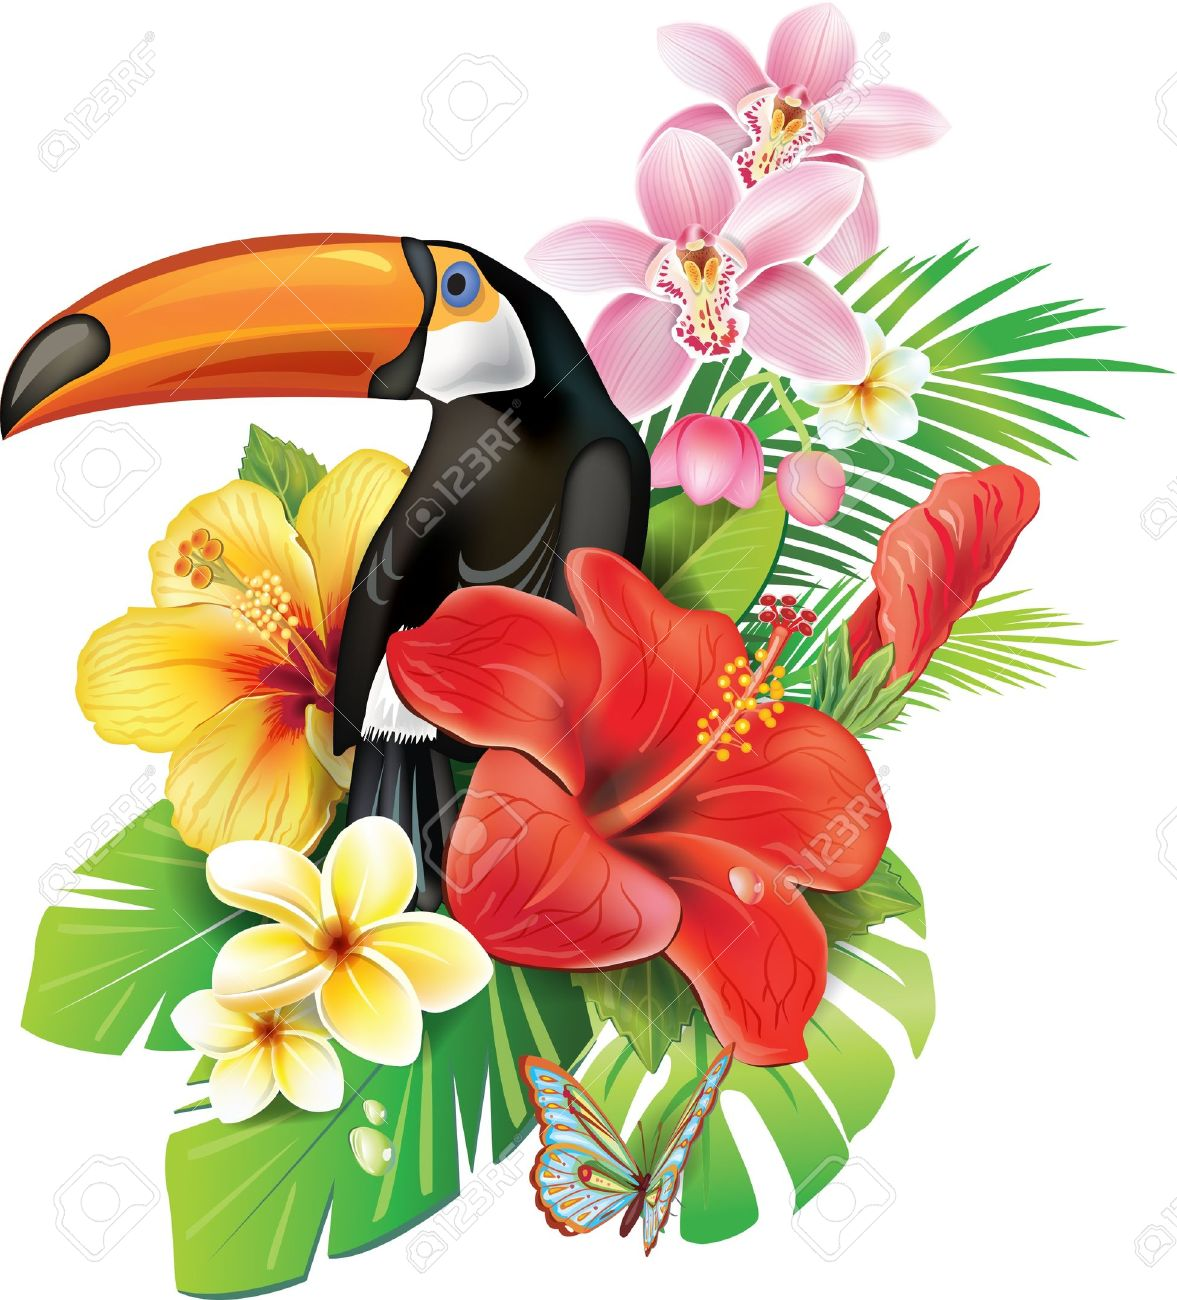 Tropical flowers and toucan - 21214109